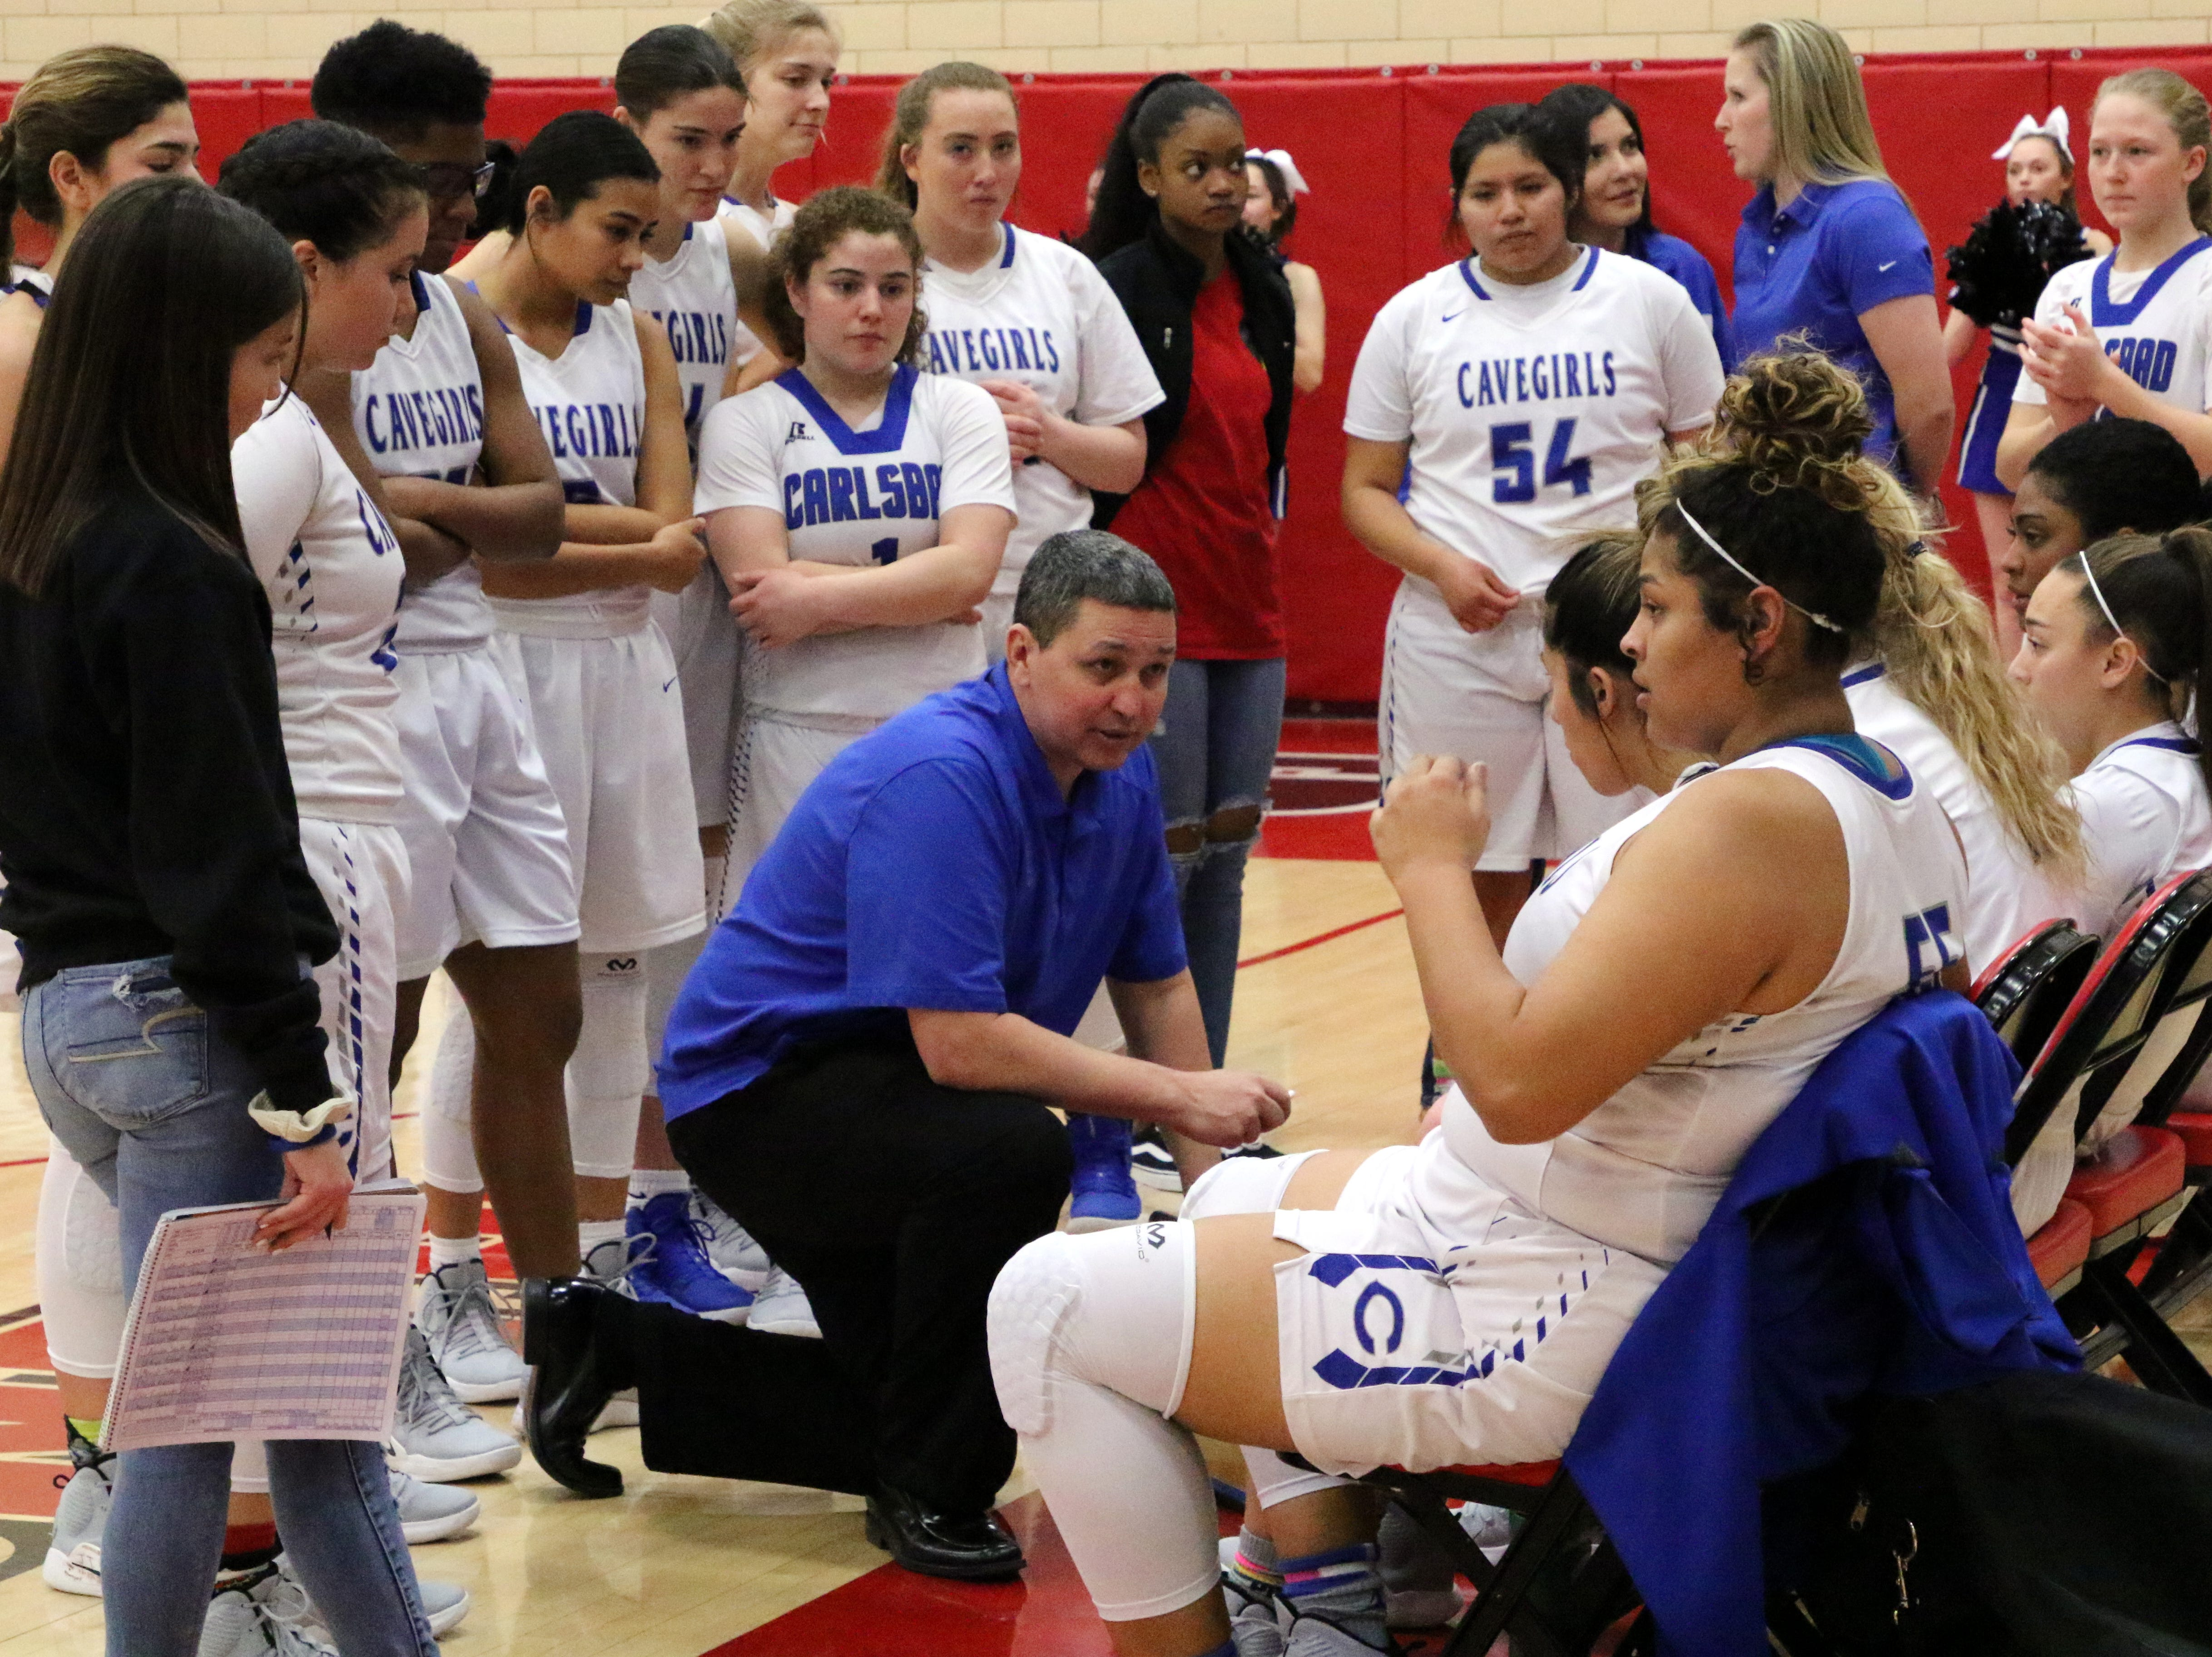 Carlsbad's John Zumbrun talks to his team during a timeout in Monday's one-game playoff to determine the No. 1 team in Class 4-5A.